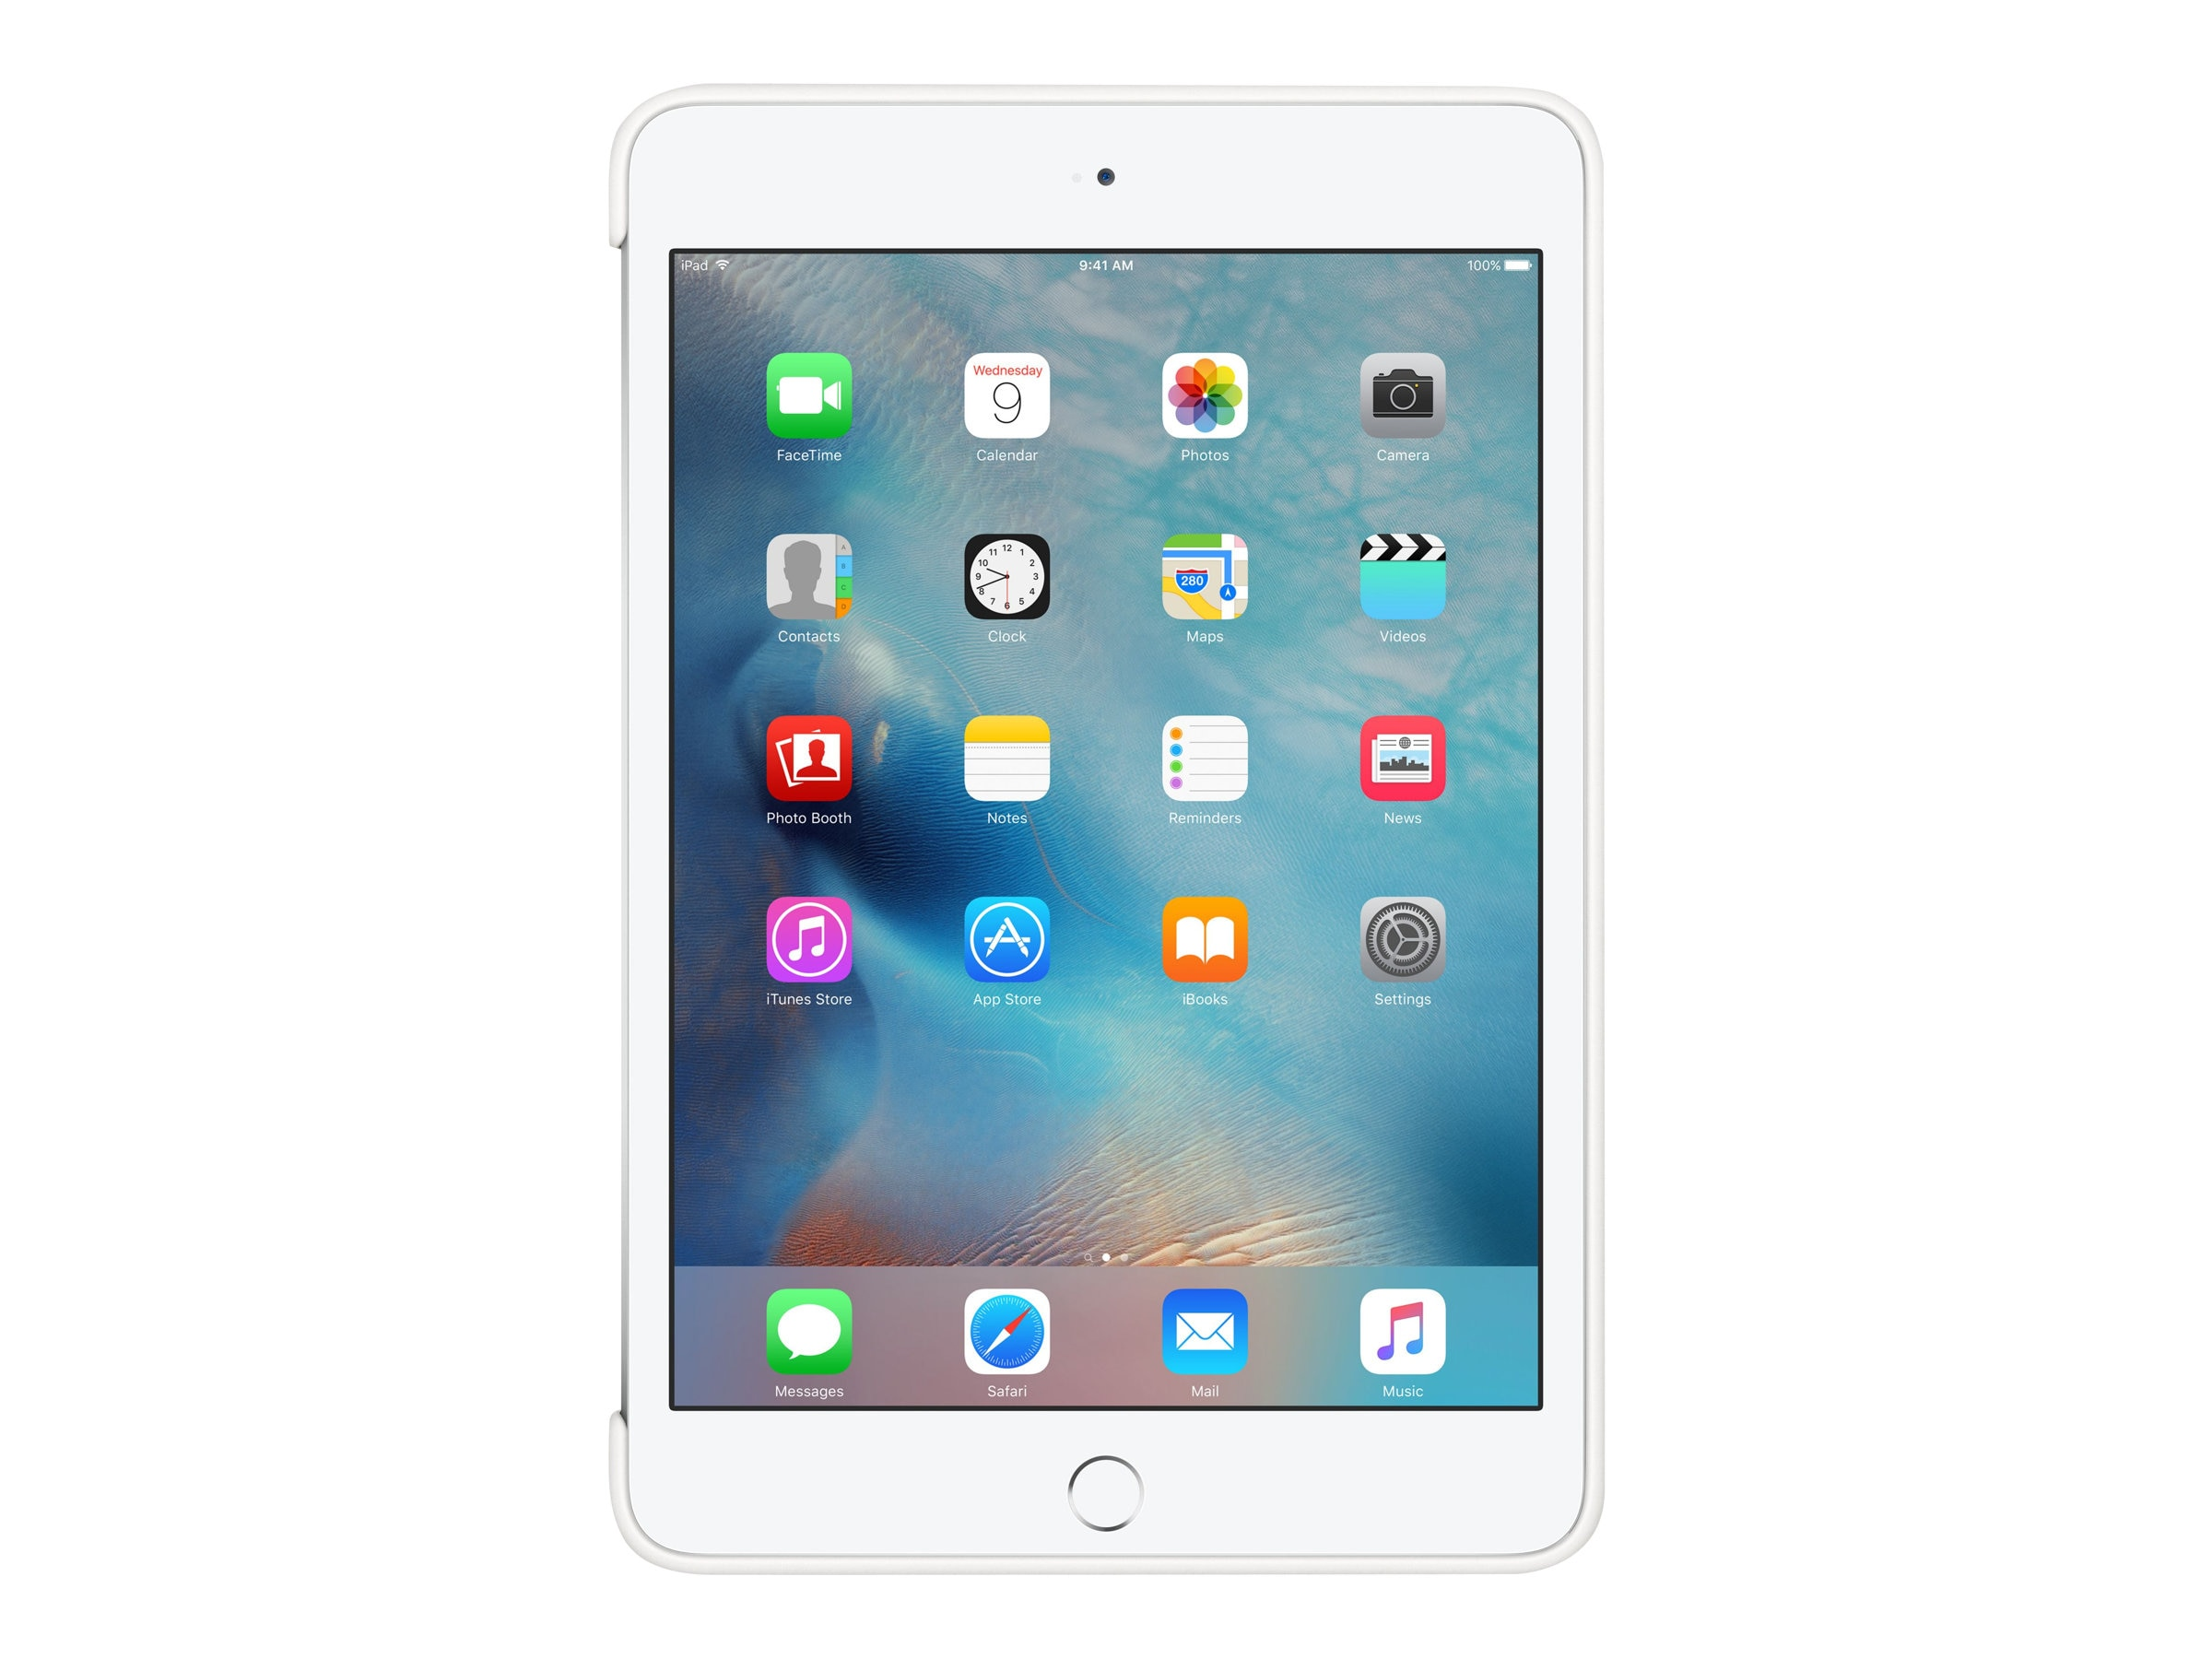 Apple Silicone Case for iPad mini 4, White, MKLL2ZM/A, 32668582, Carrying Cases - Tablets & eReaders